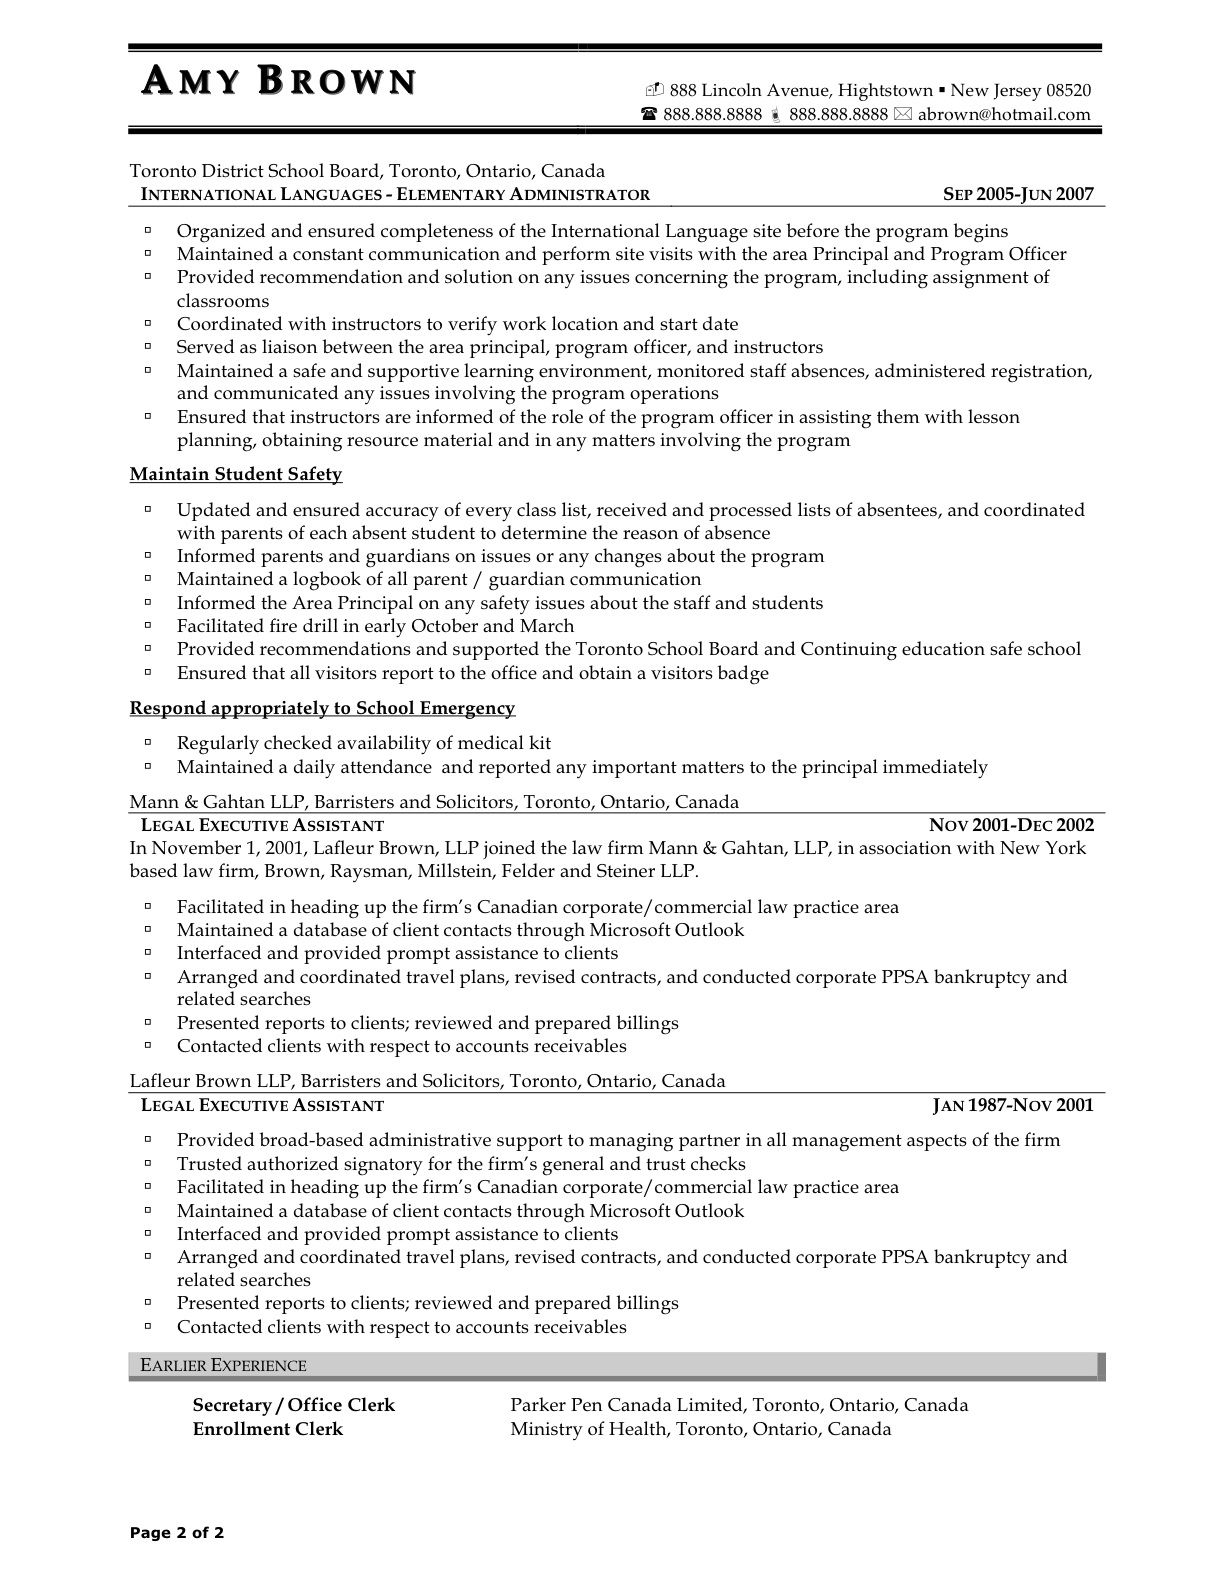 District Manager Cover Letter Sample Resume Admin Cover Letter Professional Assistant Template .